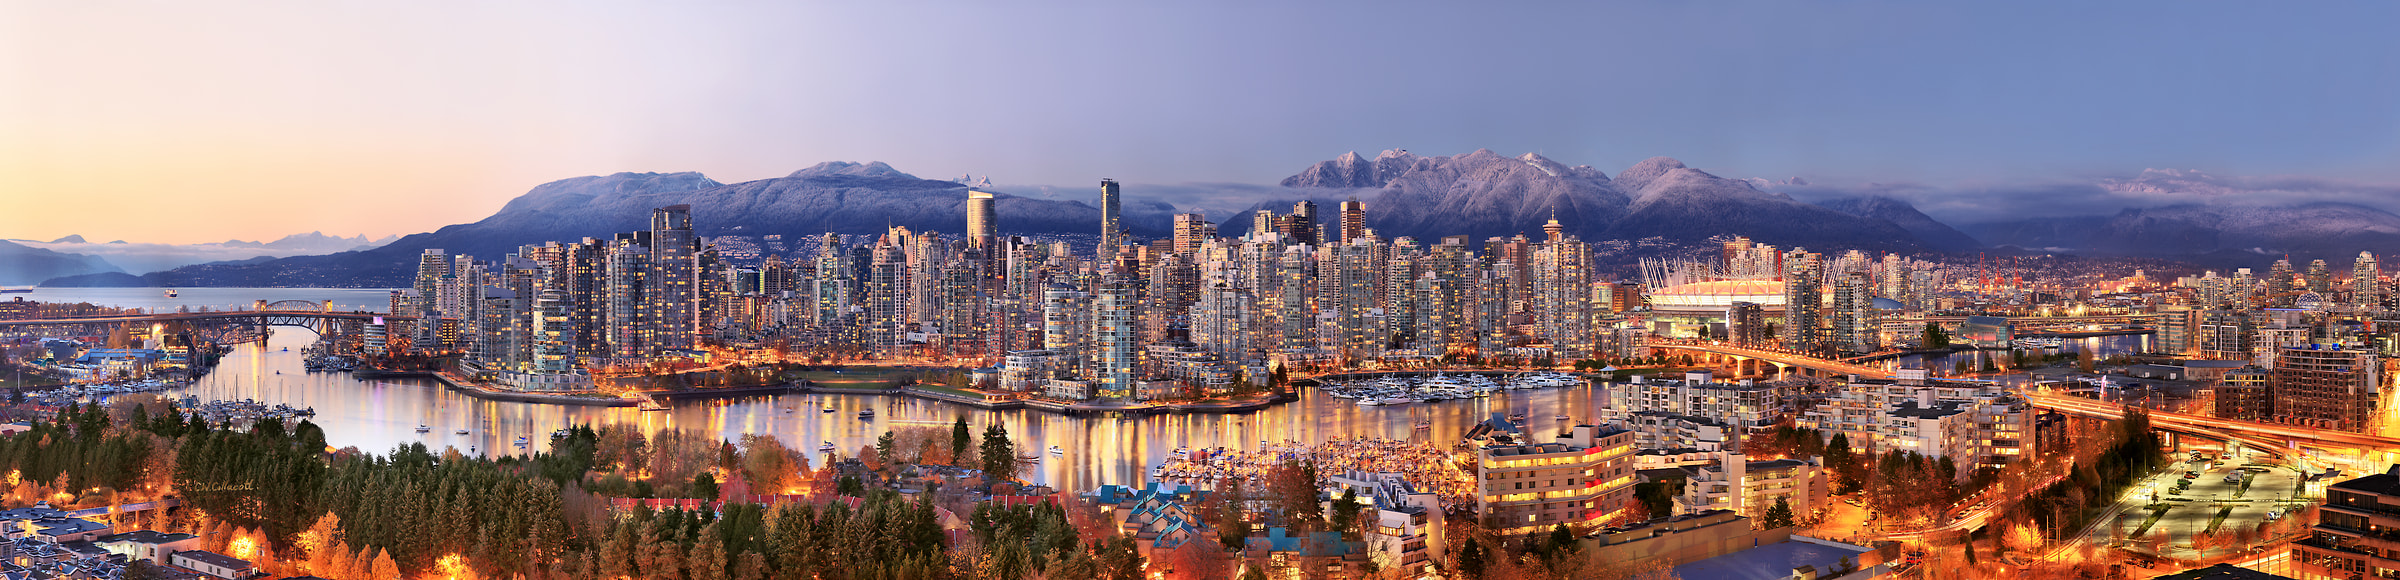 959 megapixels! A very high resolution, large-format VAST photo print of the Vancouver skyline; photograph created by Chris Collacott in Vancouver, British Columbia, Canada